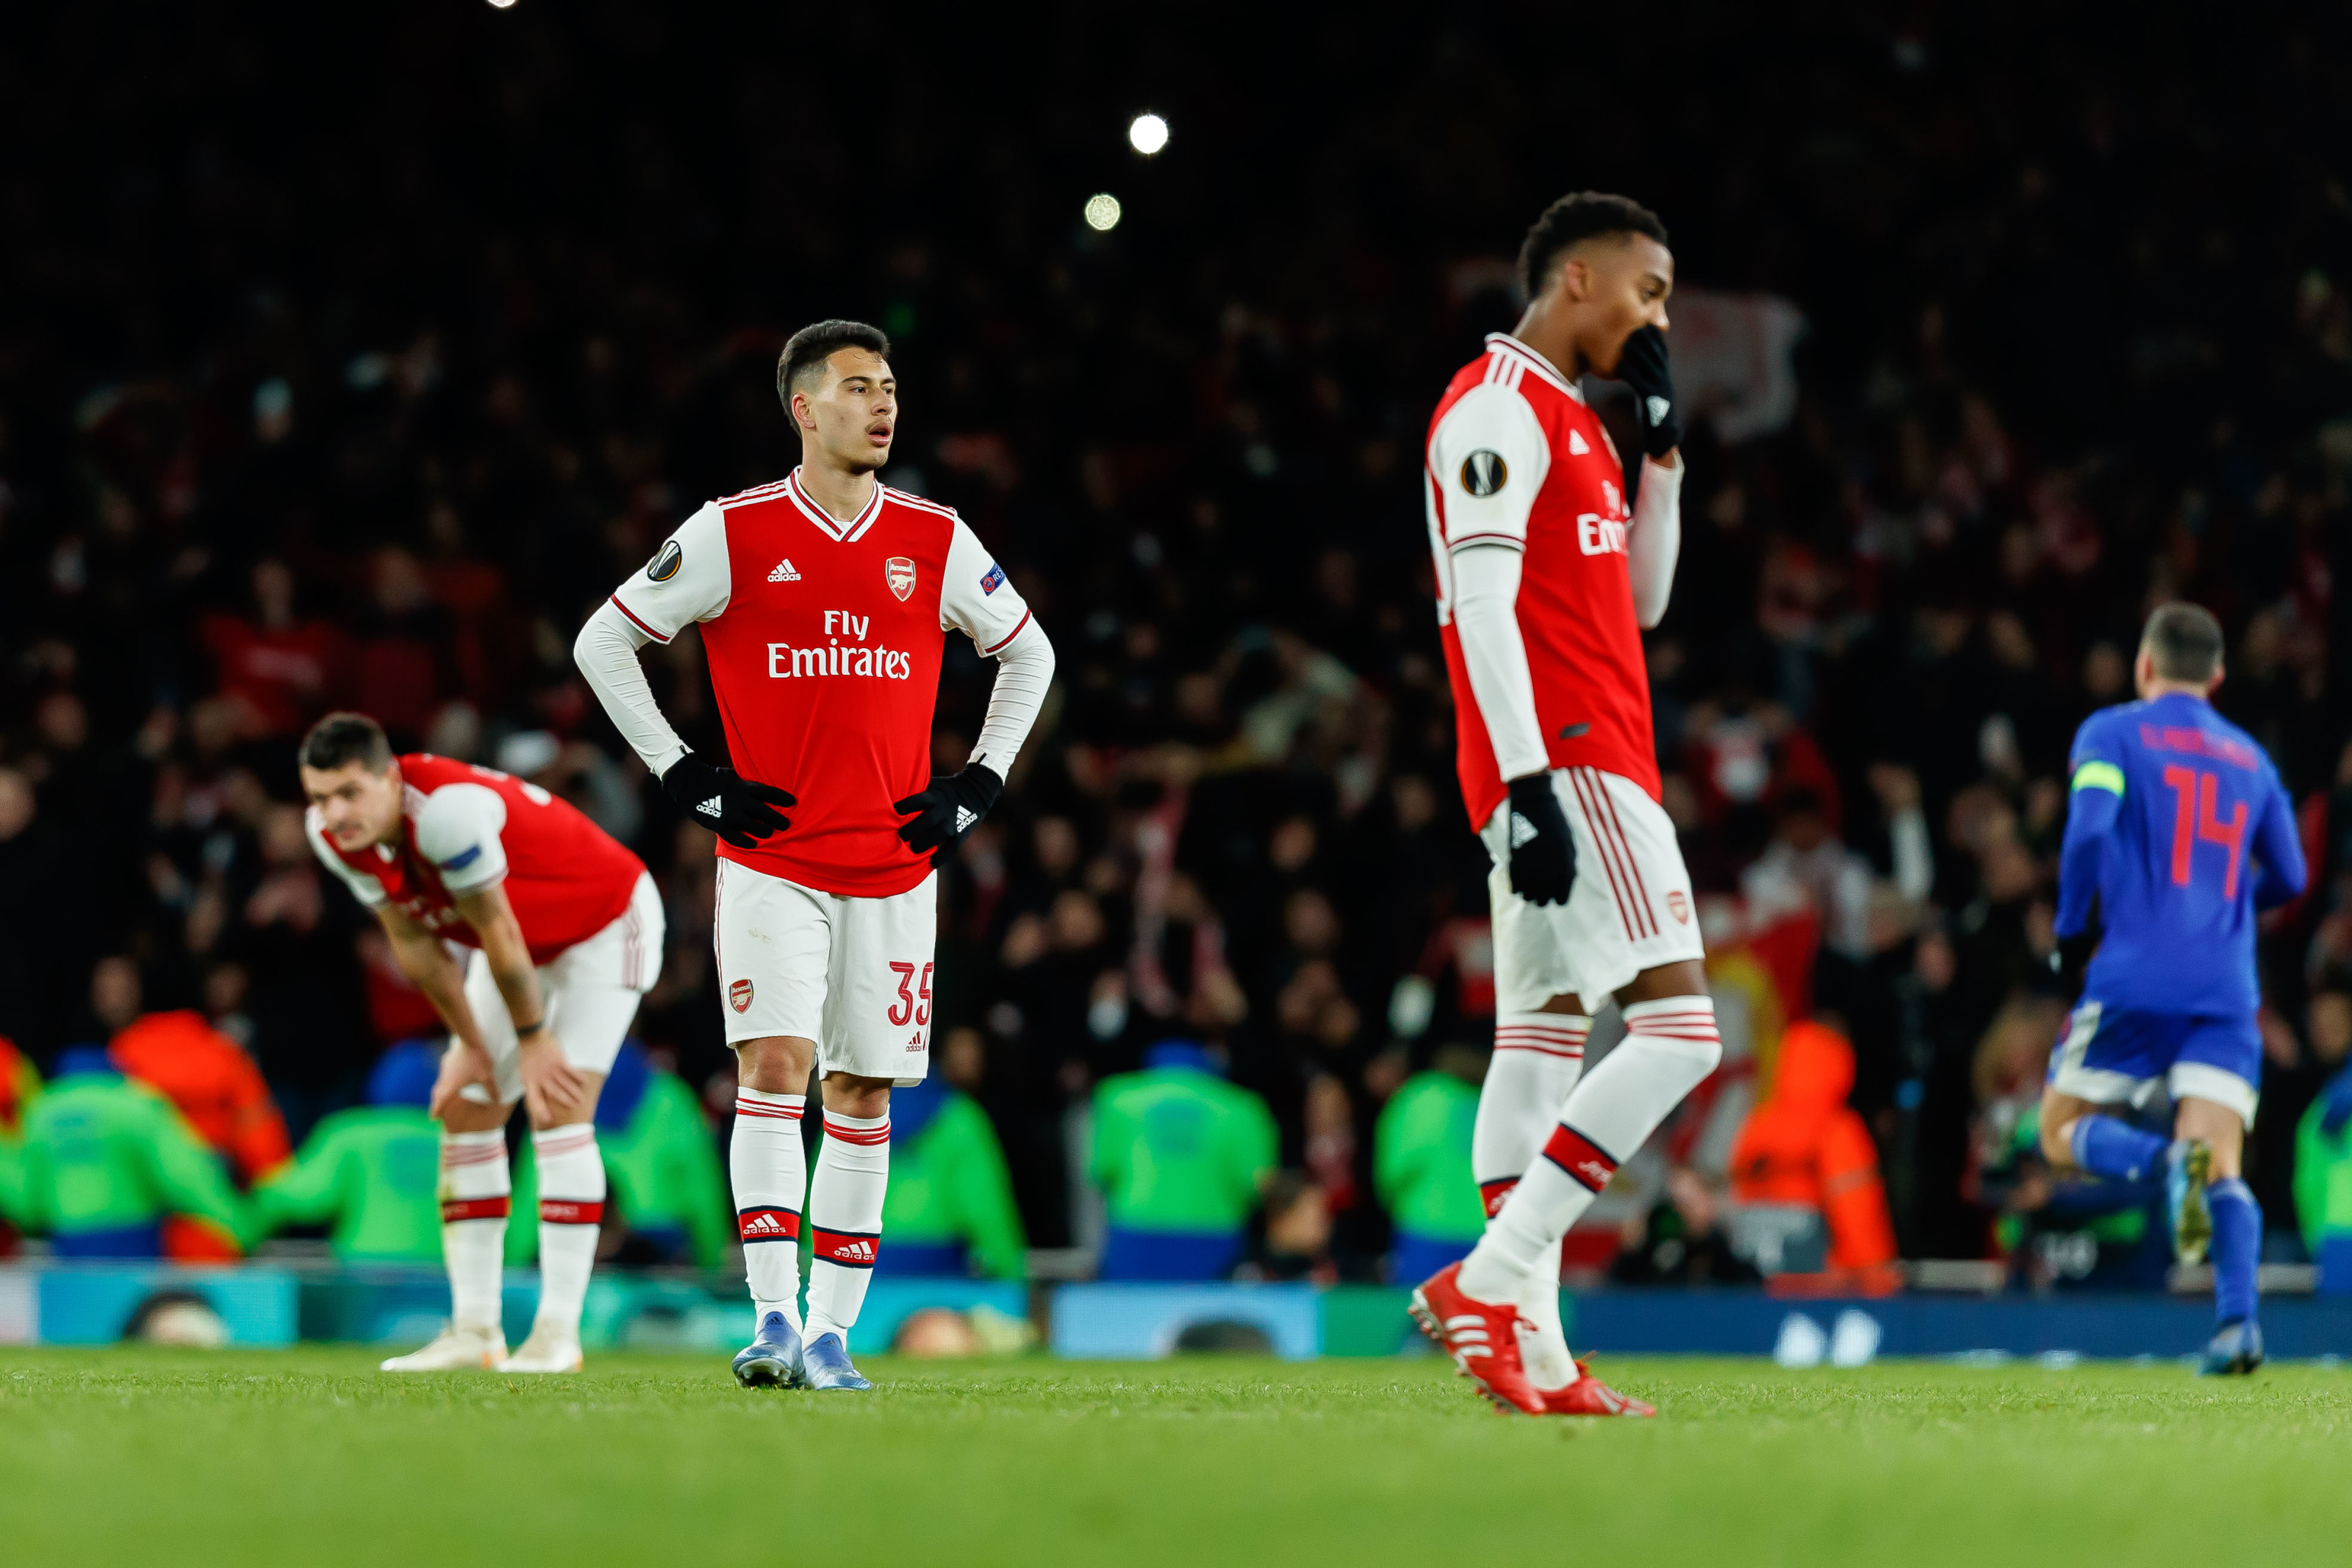 Arsenal Vs Olympiakos: You cannot switch commitment on